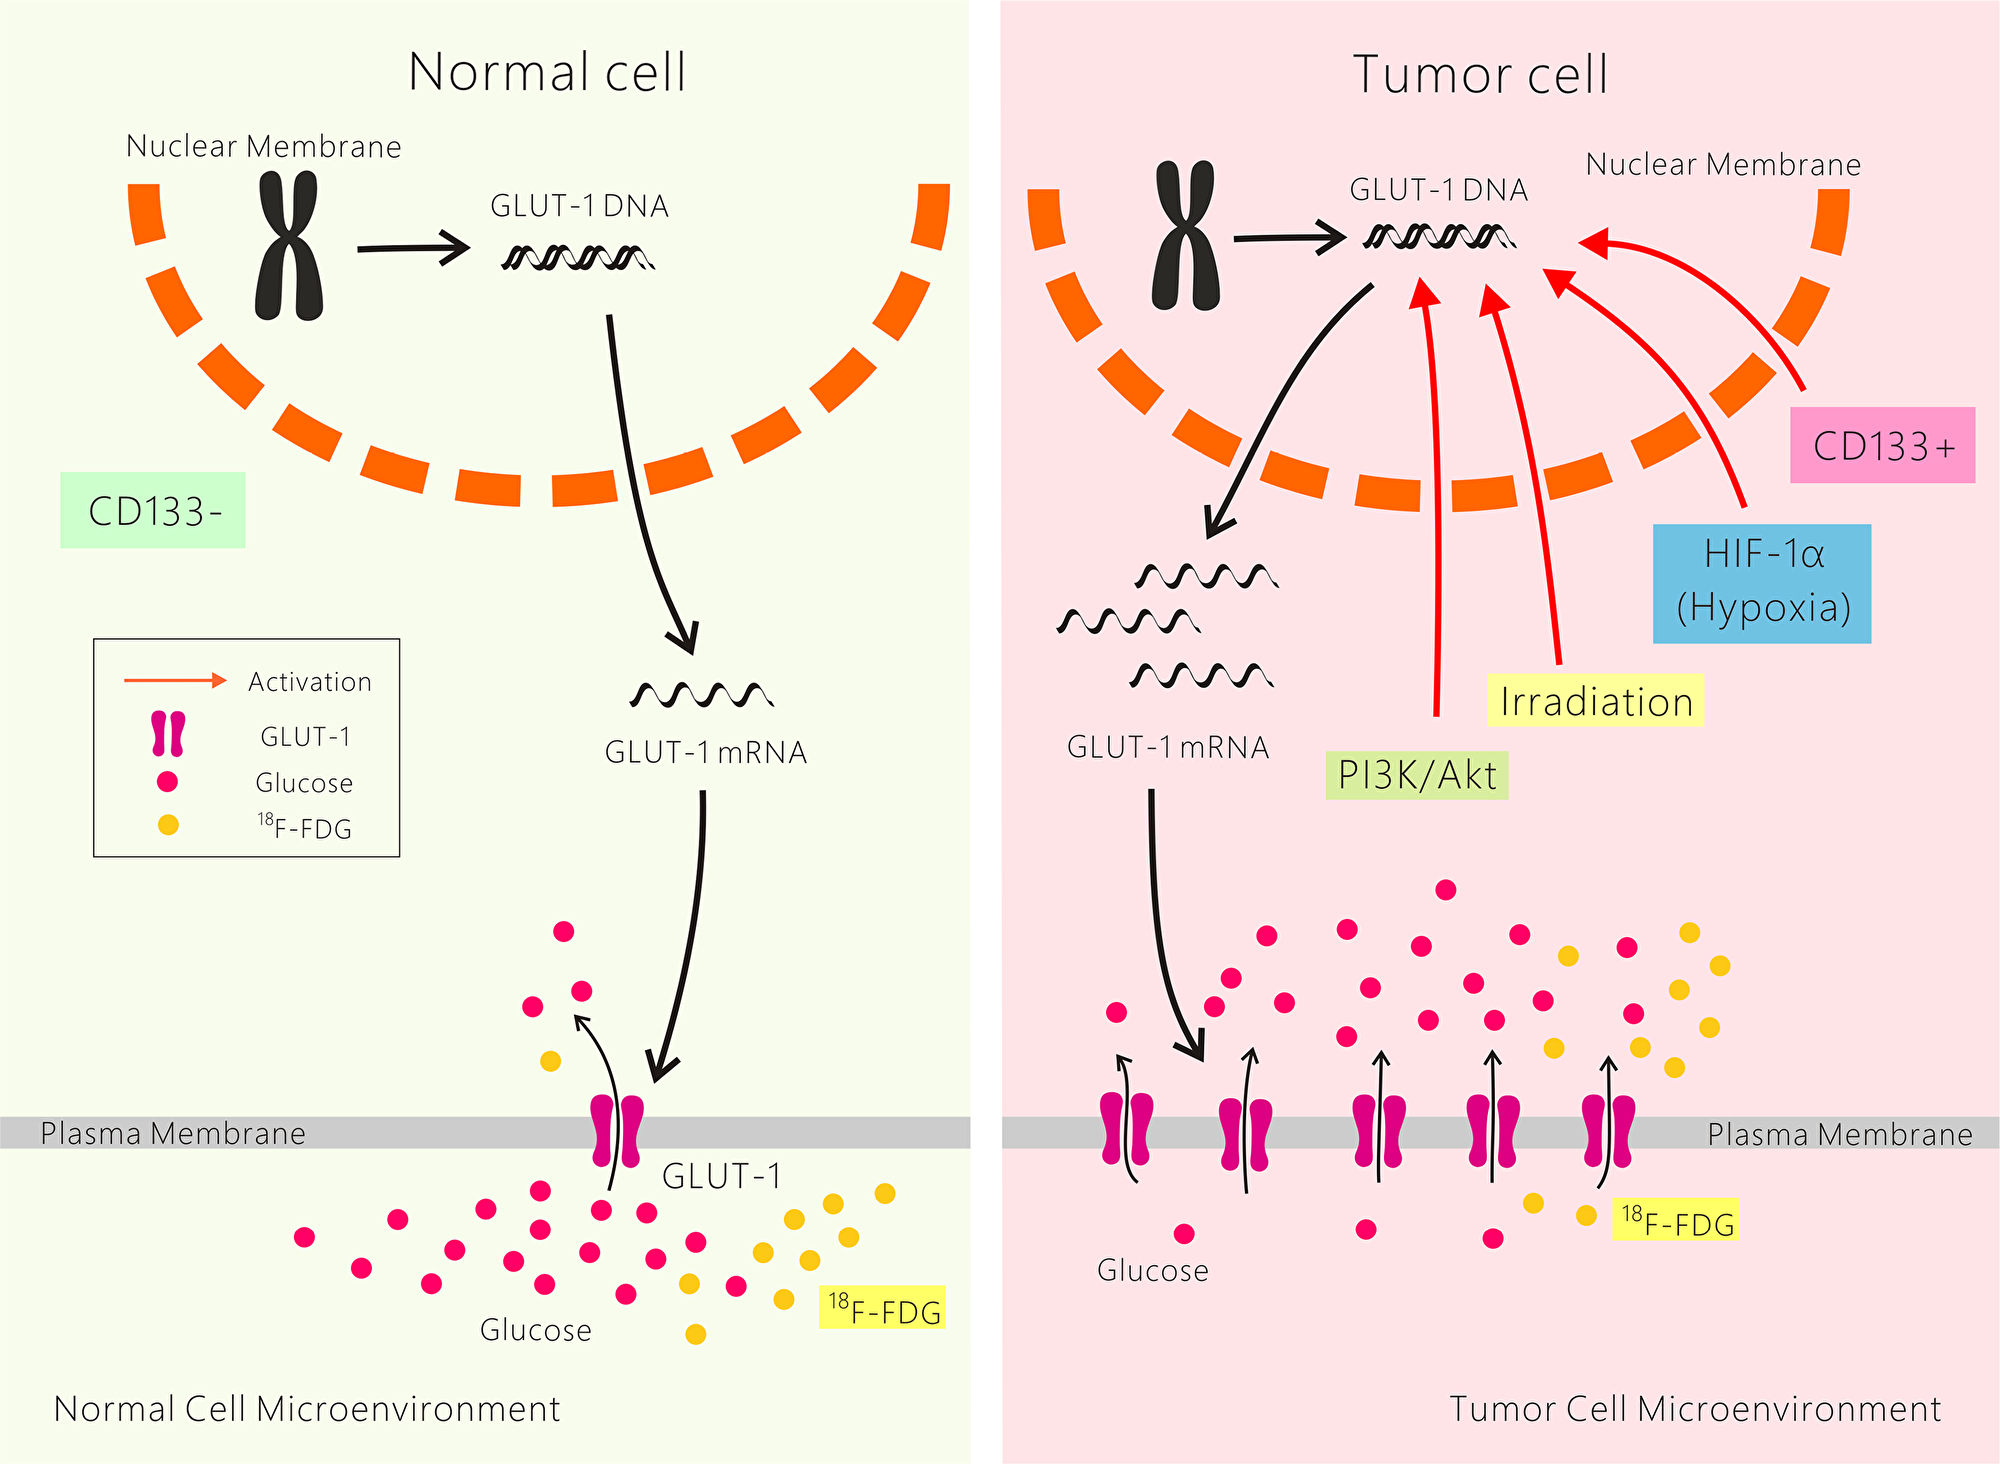 Possible mechanisms of resistance to cancer radiotherapy and chemotherapy mediated by GLUT-1.